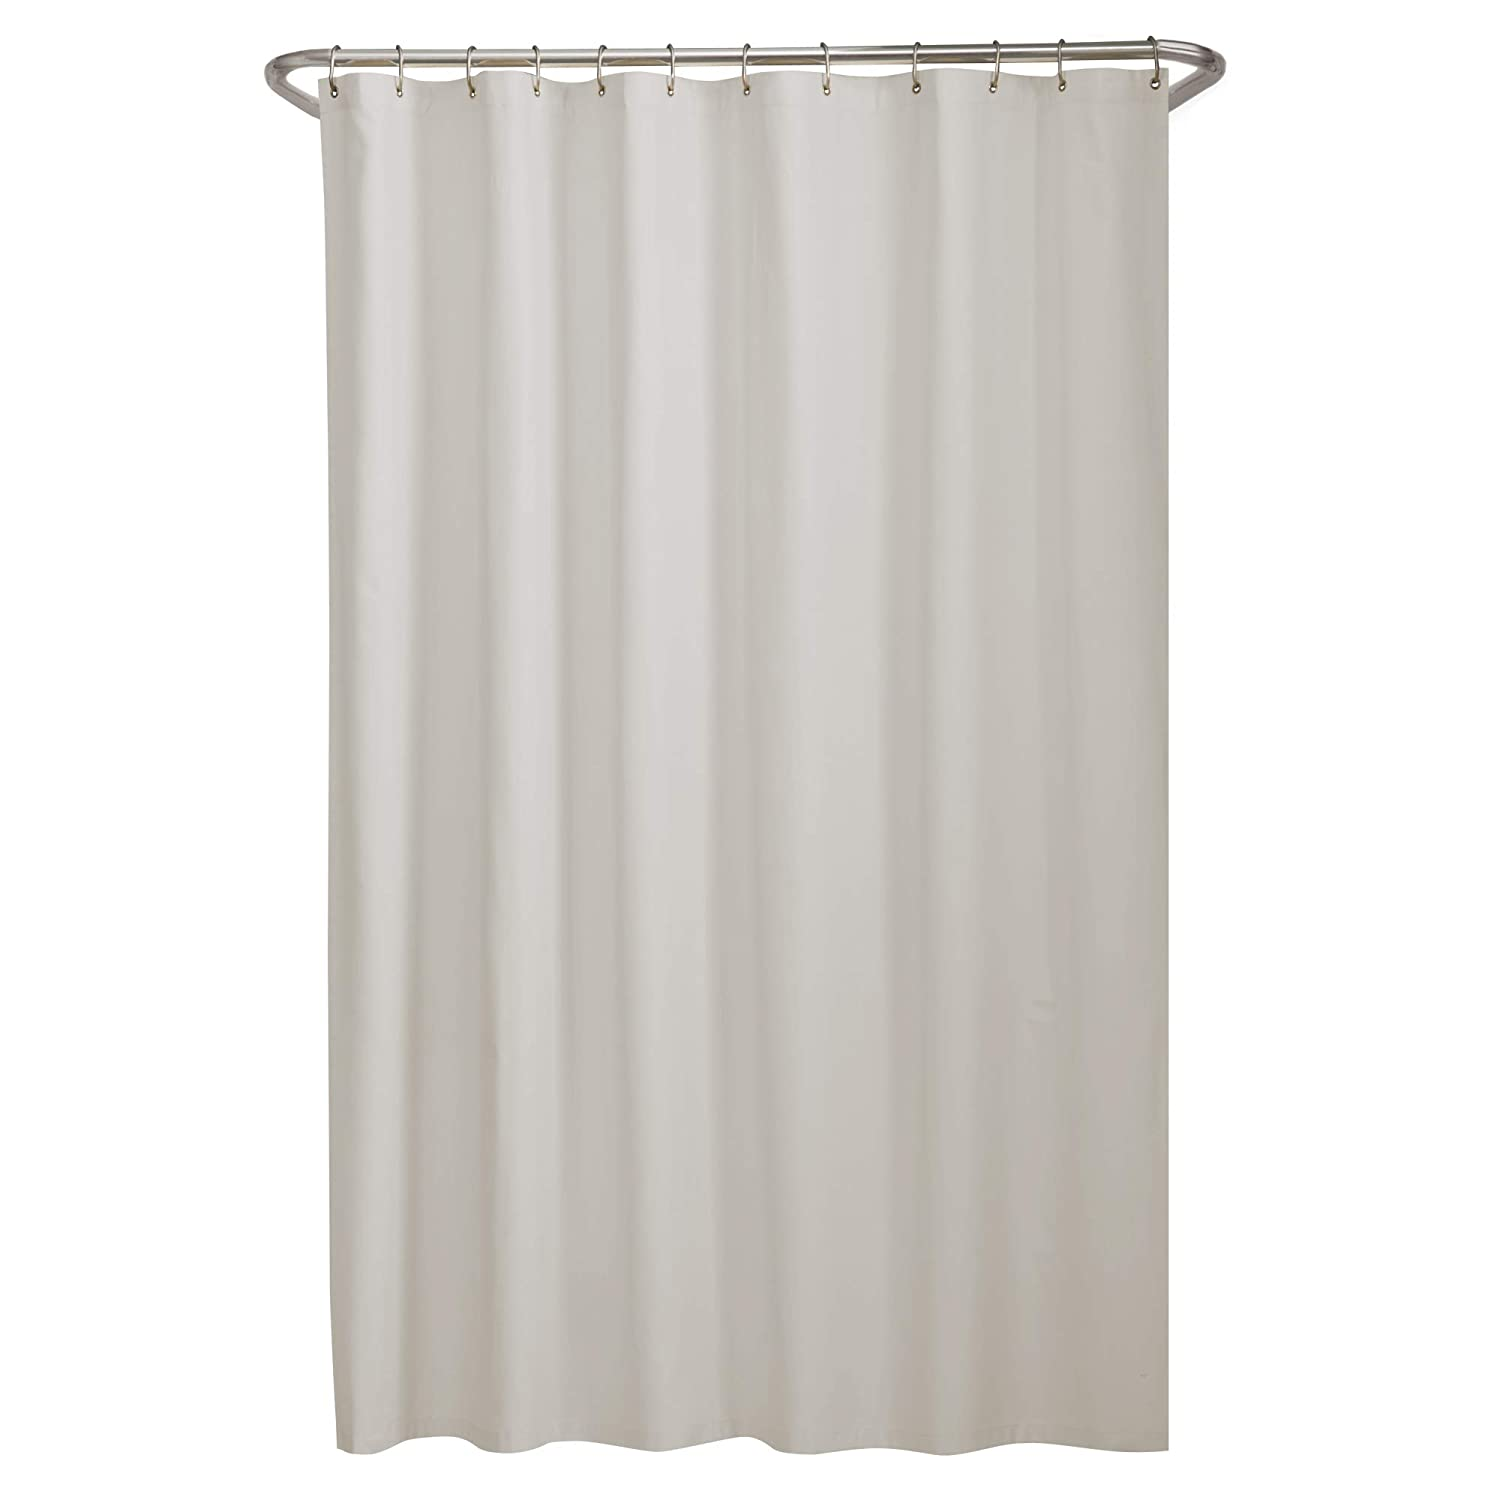 Amazon Maytex Microfiber Shower Curtain Liner Bone 70 X 72